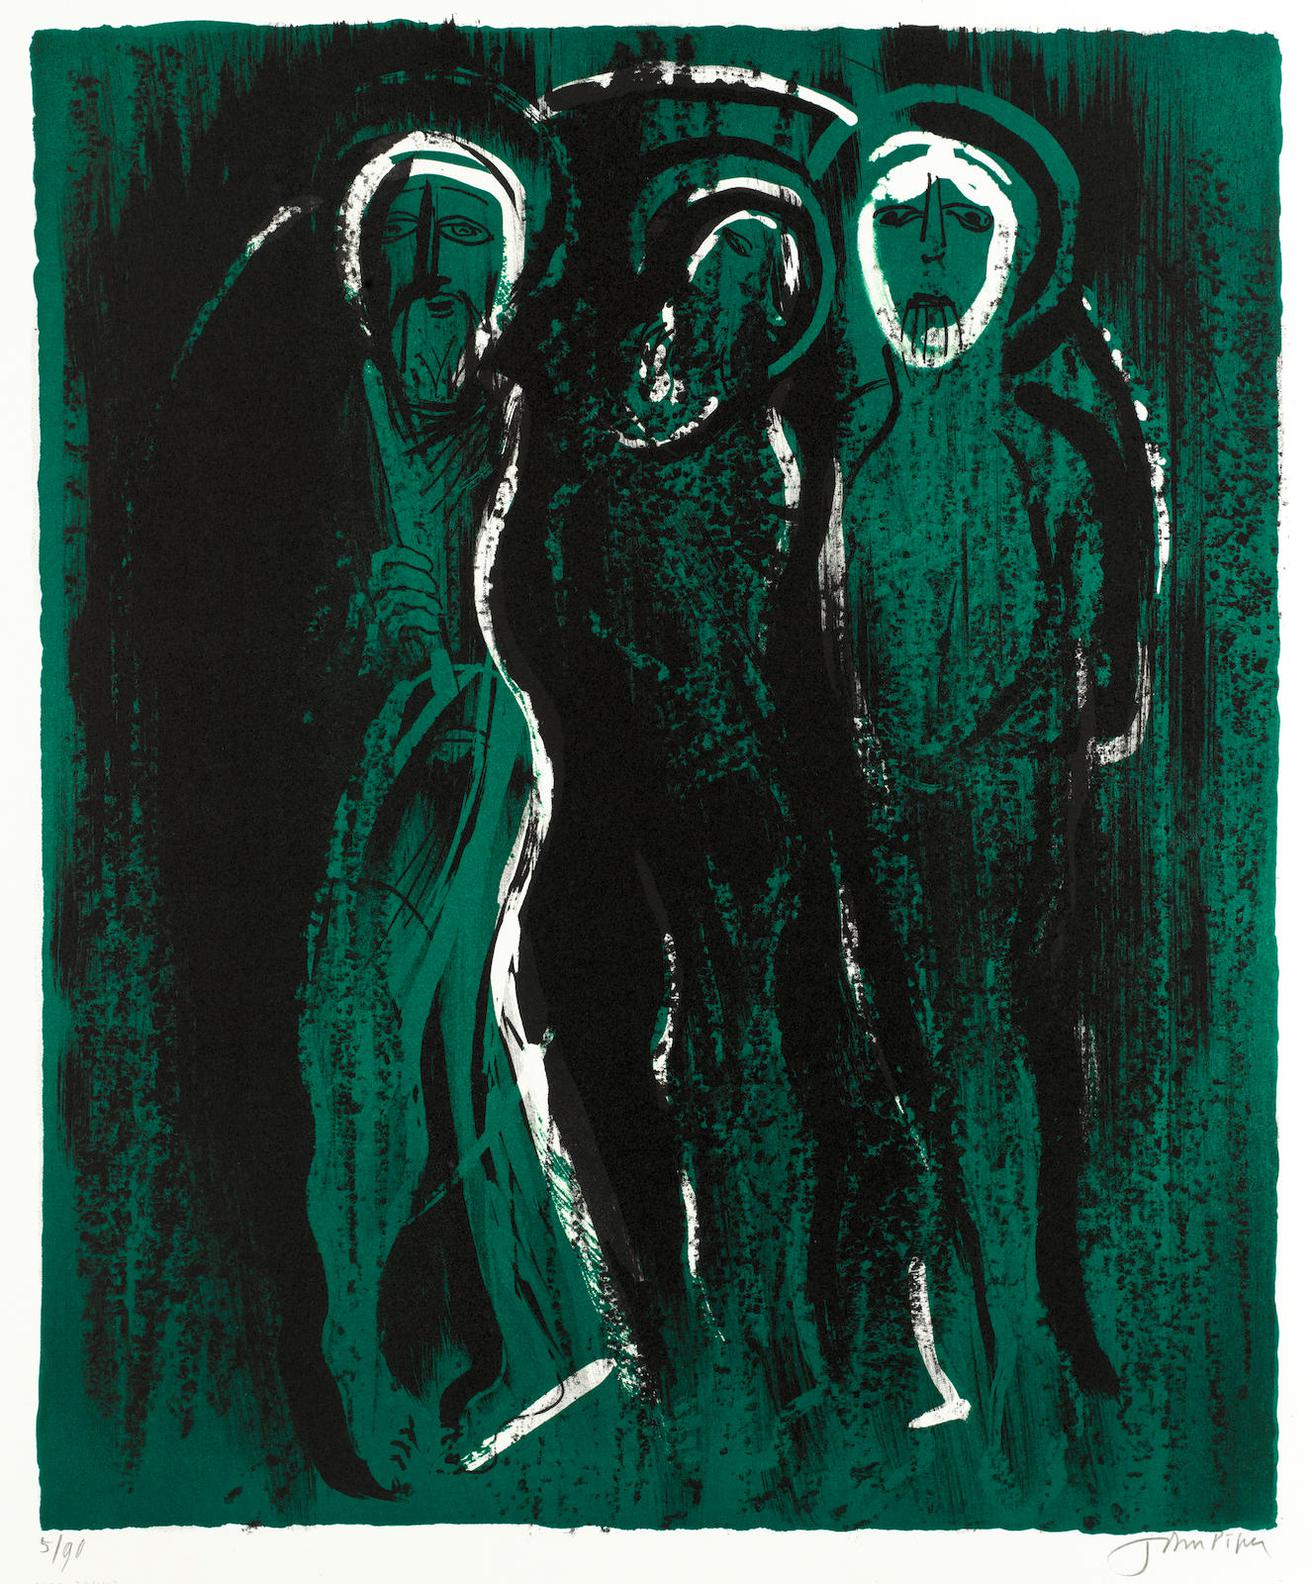 John Piper-The Visitation-1975